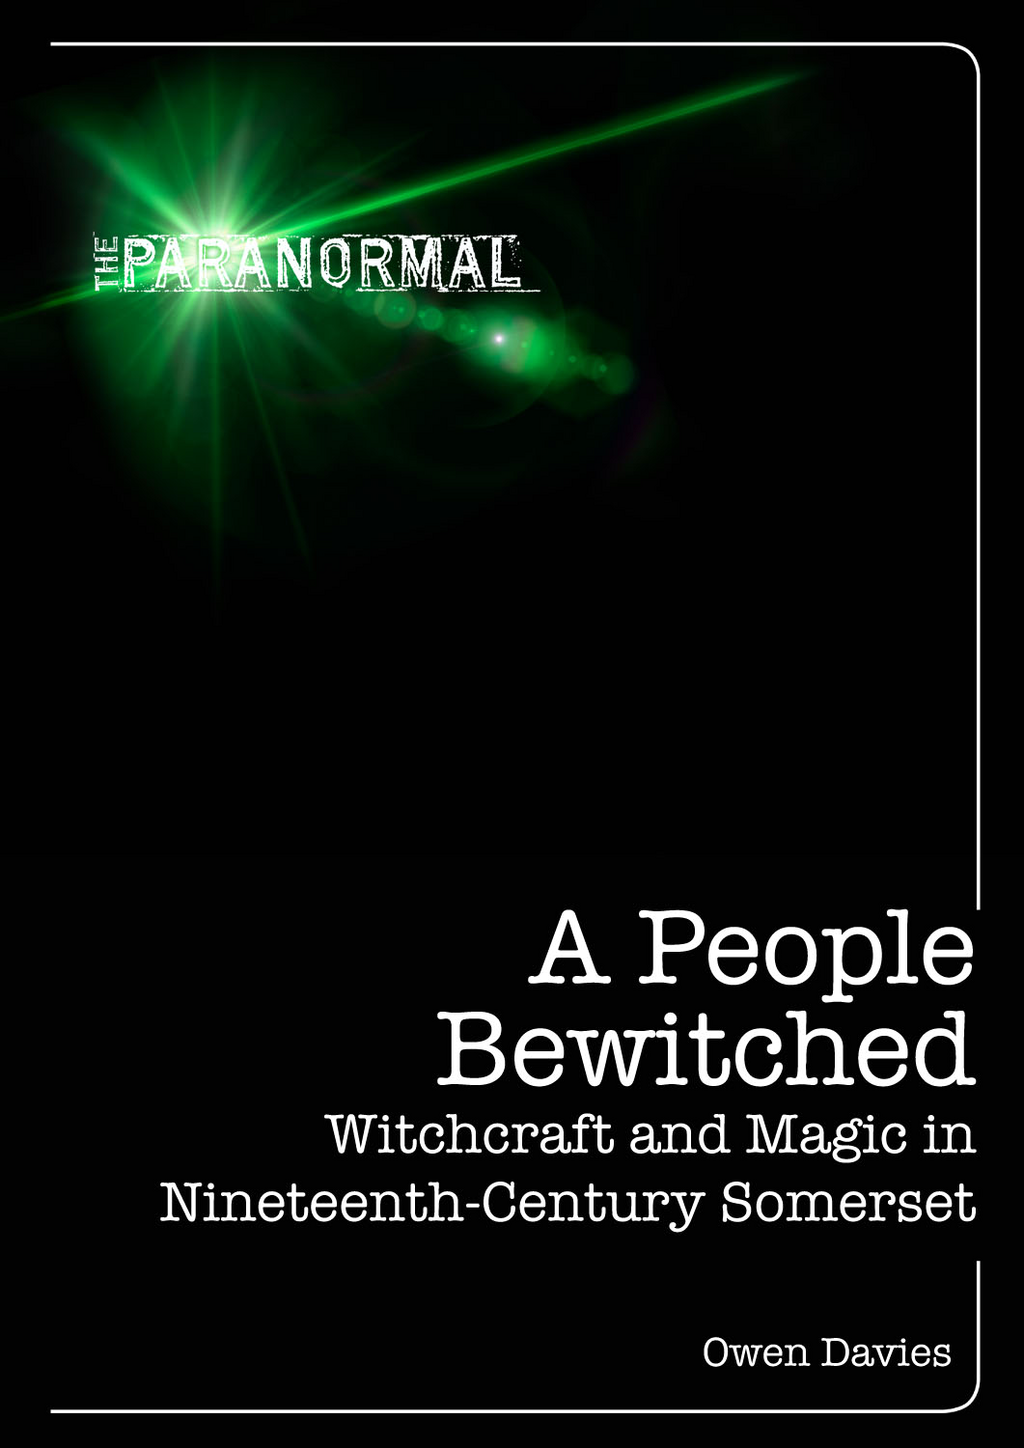 A People Bewitched Witchcraft and Magic in Nineteenth-Century Somerset